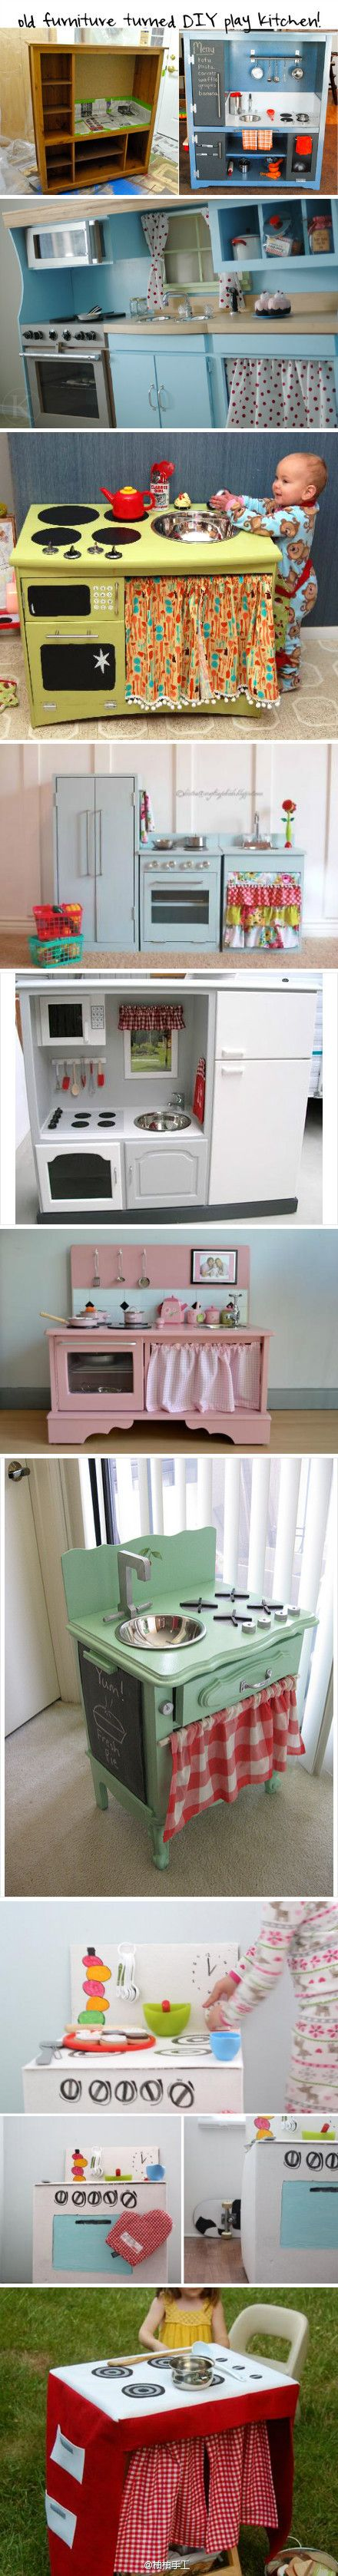 Attrayant Old Furniture Turned DIY Play Kitchen   Great Ideas For If I Ever Have  Grandkids!